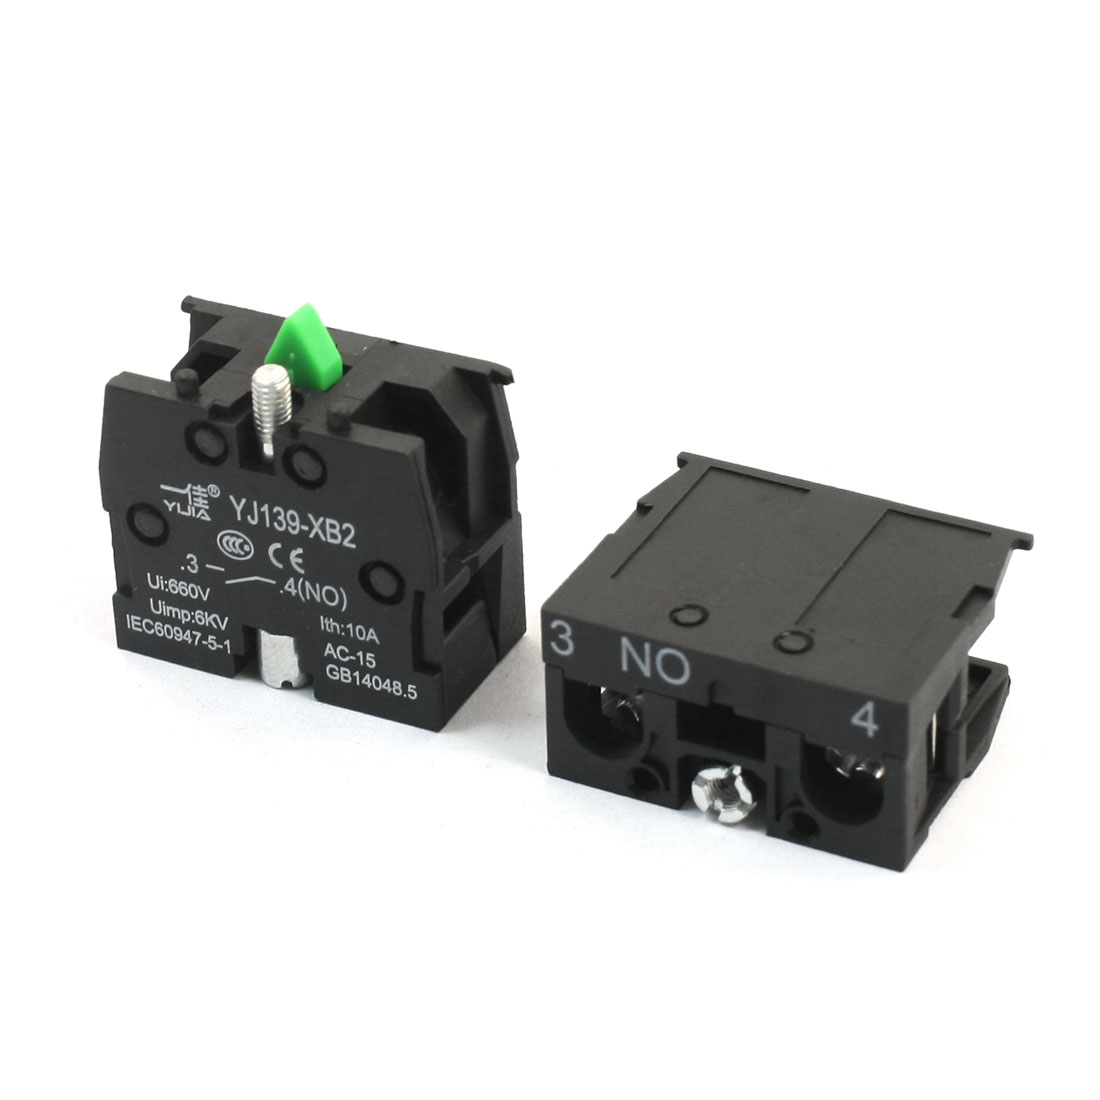 2Pcs 600V 10A SPST NO Normal Open Momentary 2 Screw Terminal Spring Load Push Button Switch Auxiliary Contact Black